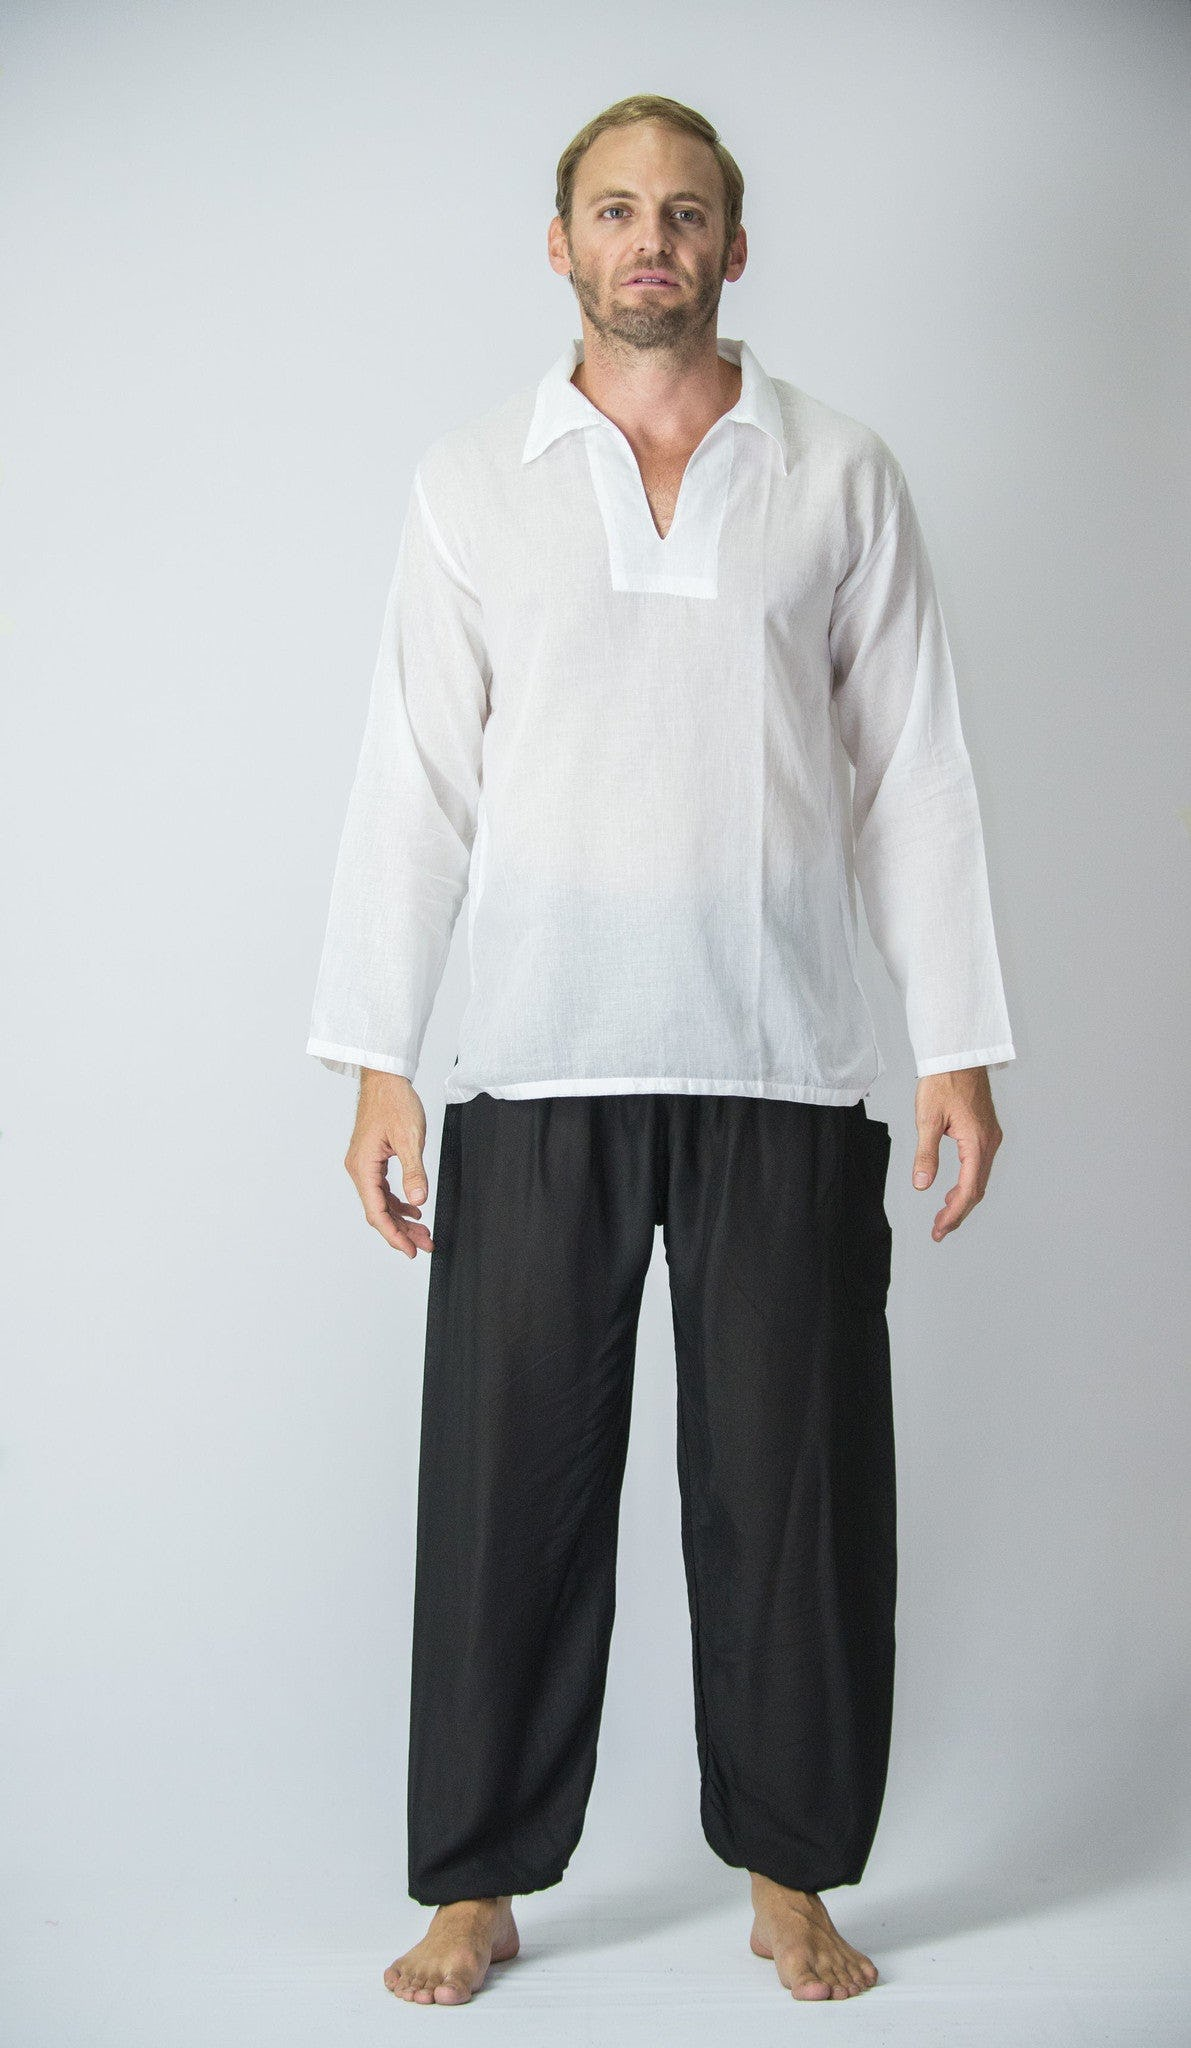 Mens Yoga Shirts Collar V Neck In White Harem Pants